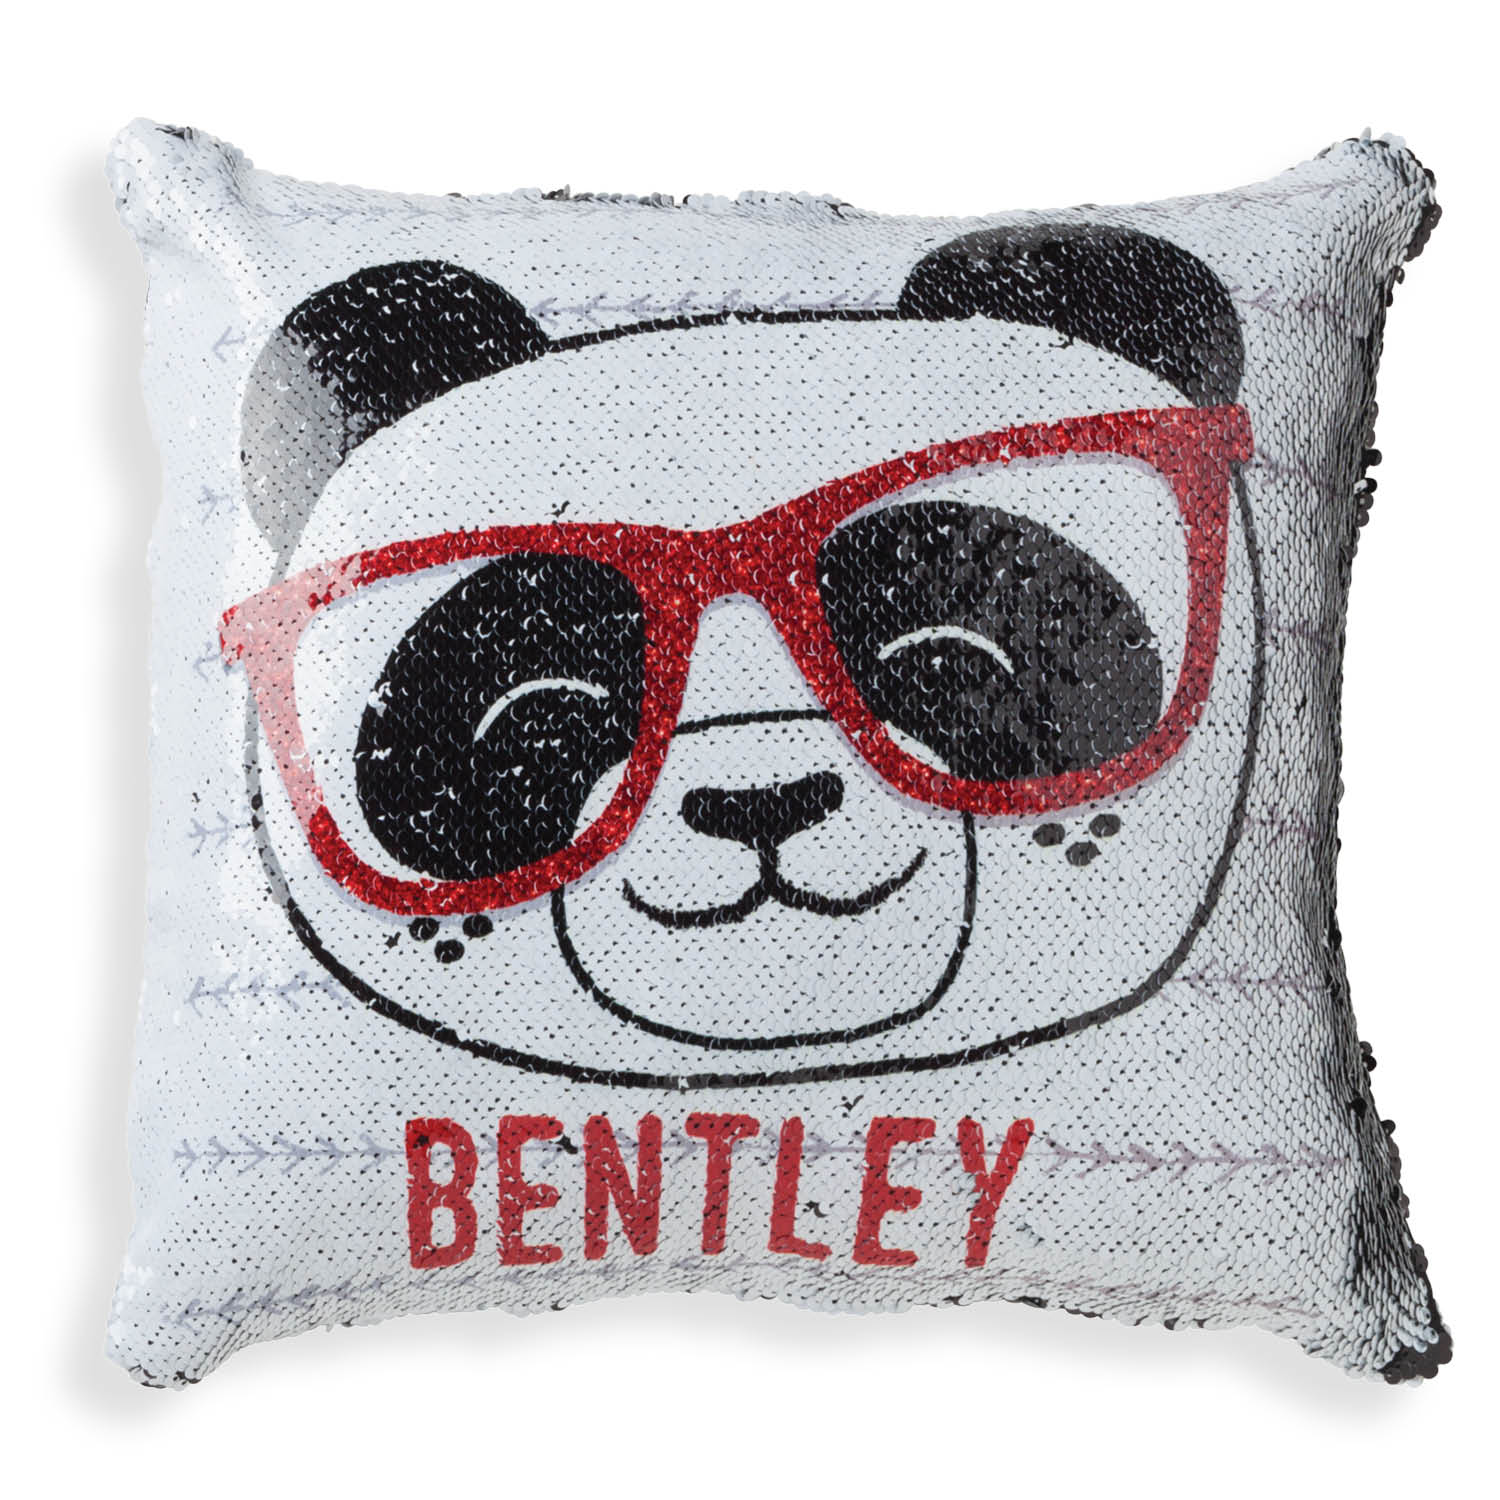 Personalized Panda With Red Glasses Reversible Sequin Pillow - 16x16